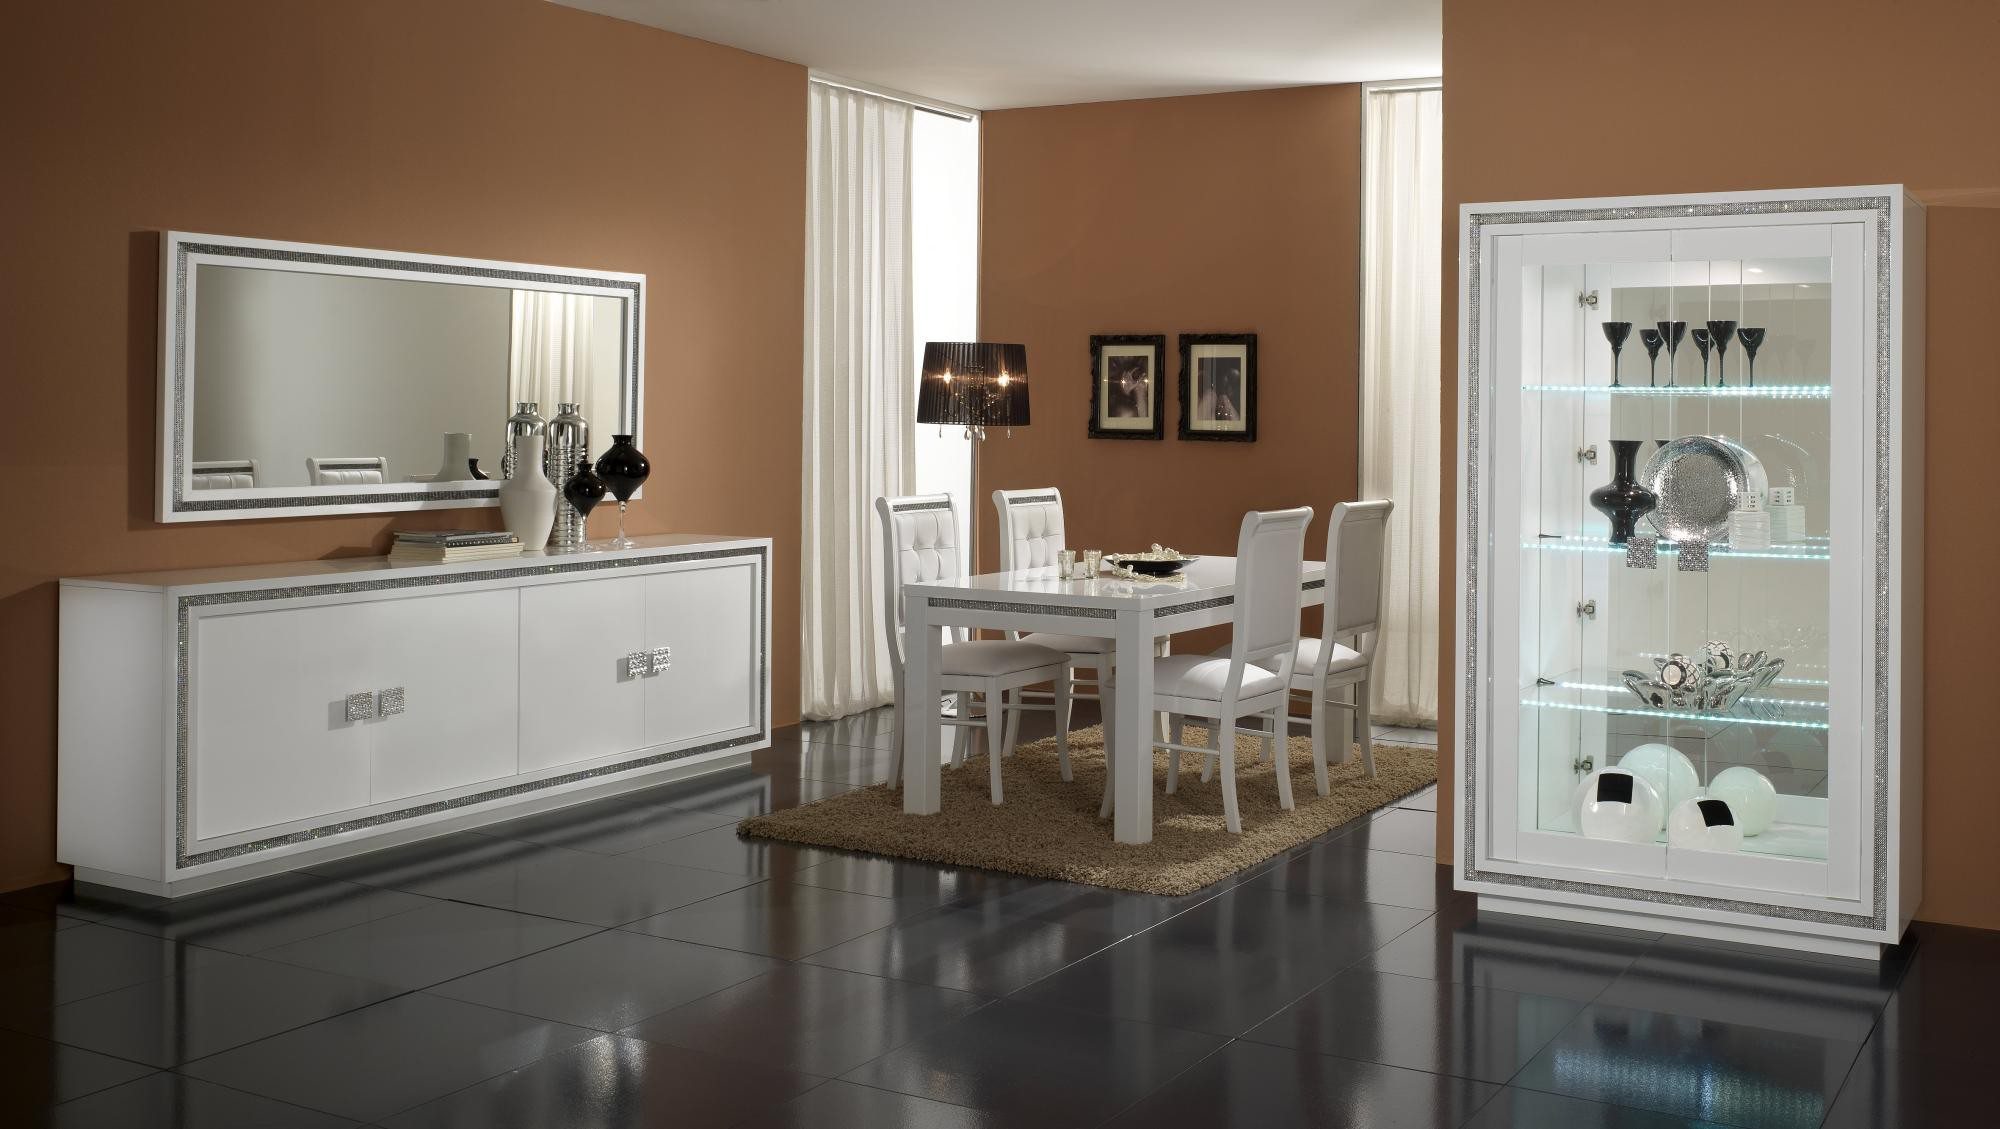 miroir salle a manger pour bahut 2 id es de d coration. Black Bedroom Furniture Sets. Home Design Ideas